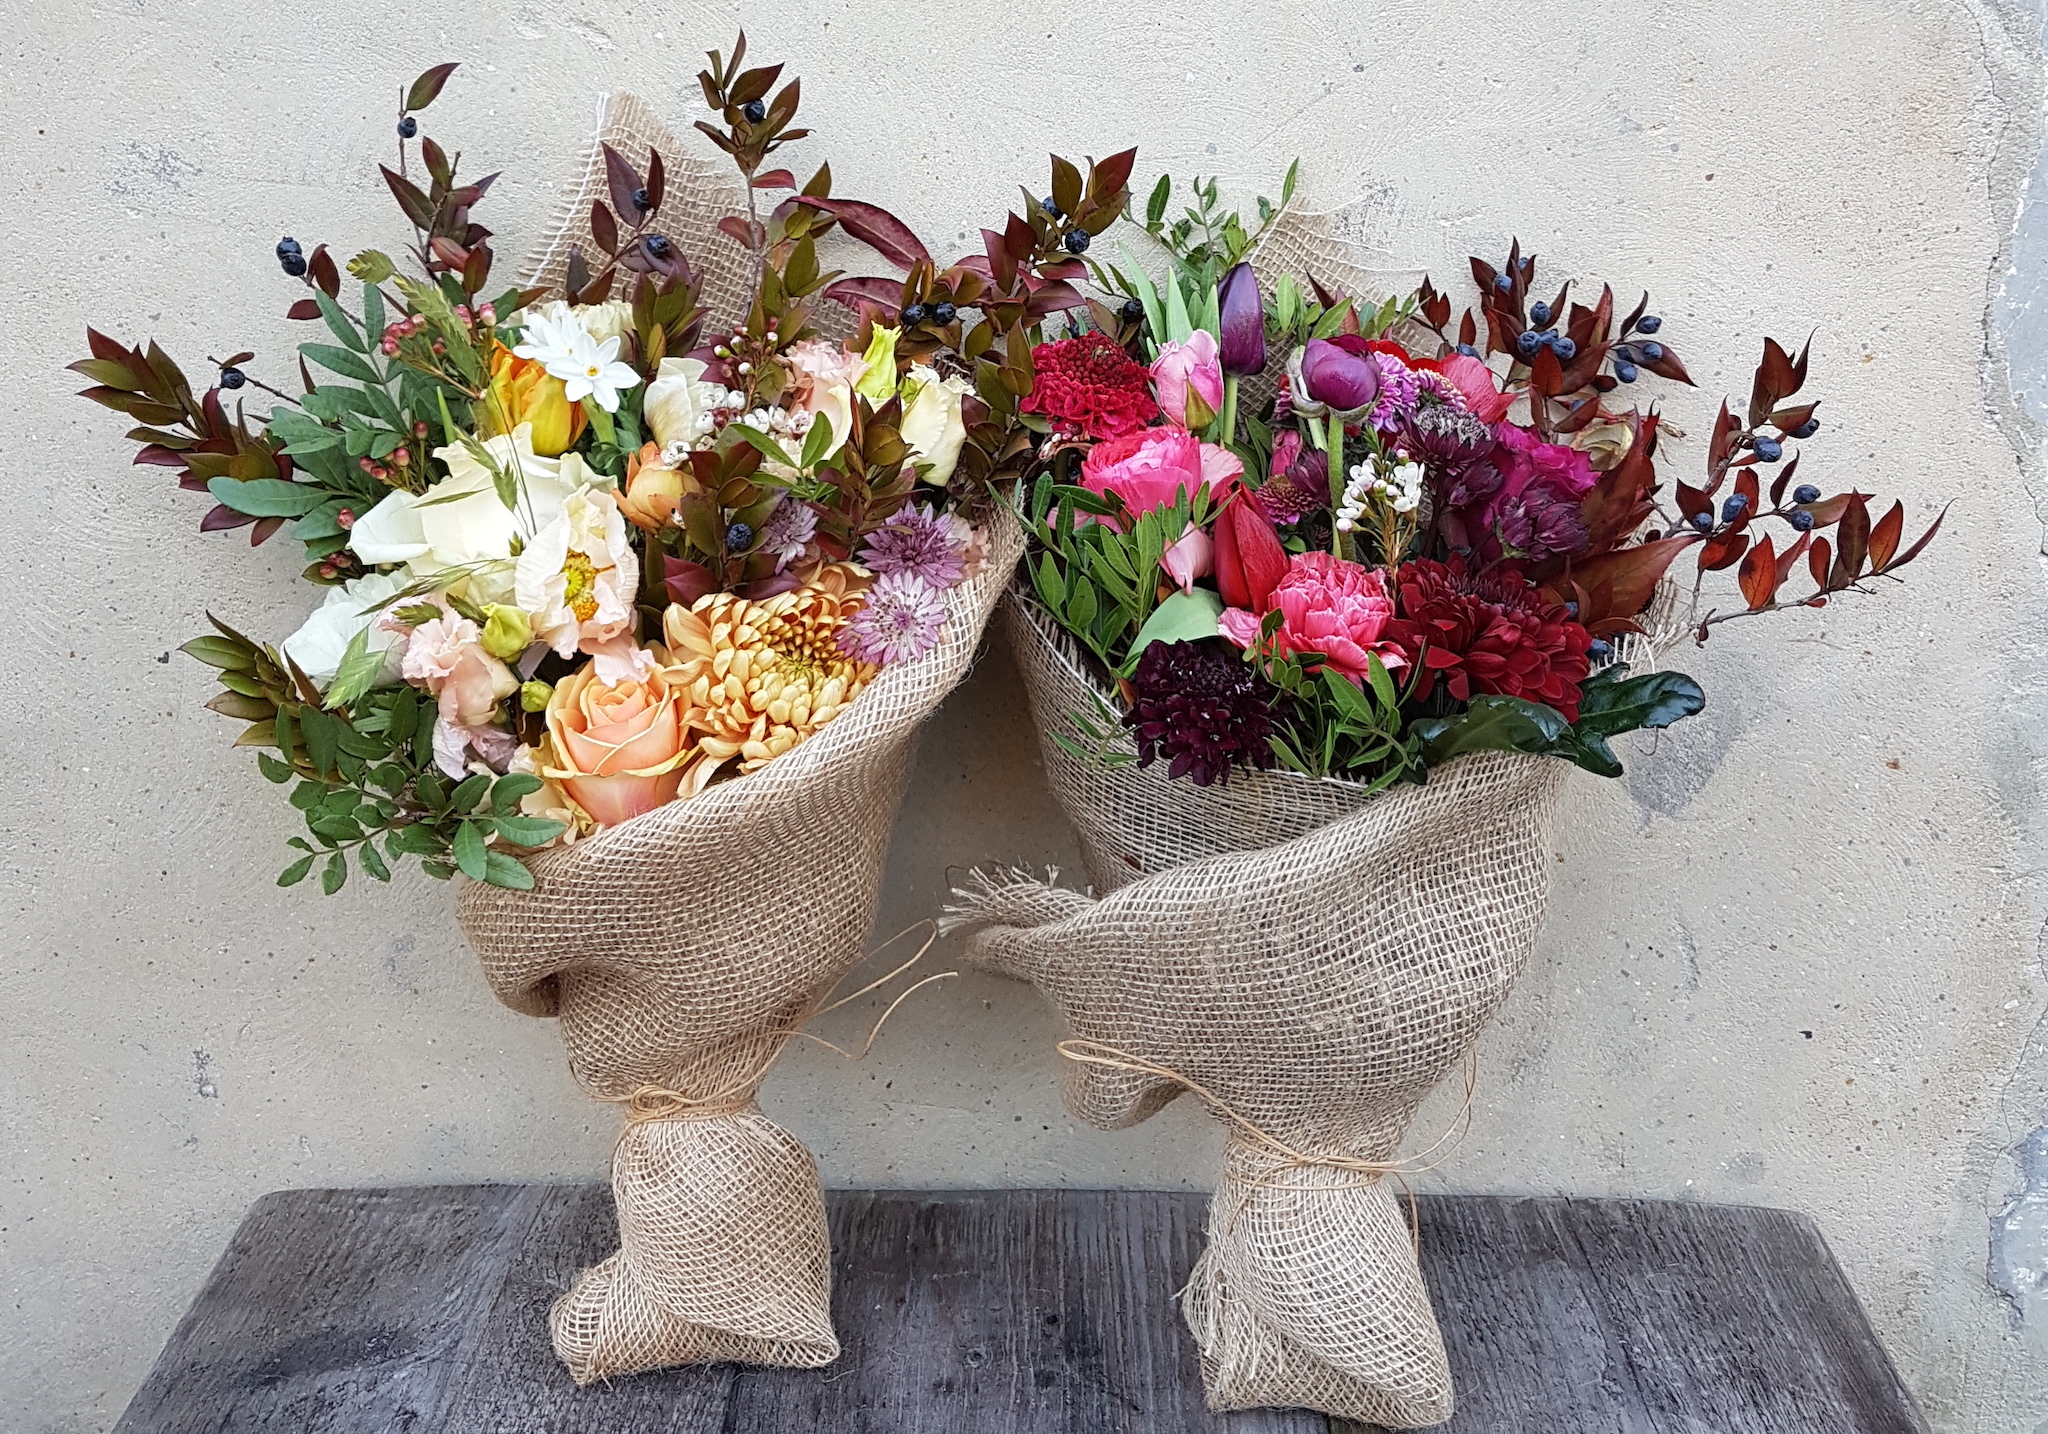 15 online florists for flower deliveries in london right now petalon flowers izmirmasajfo